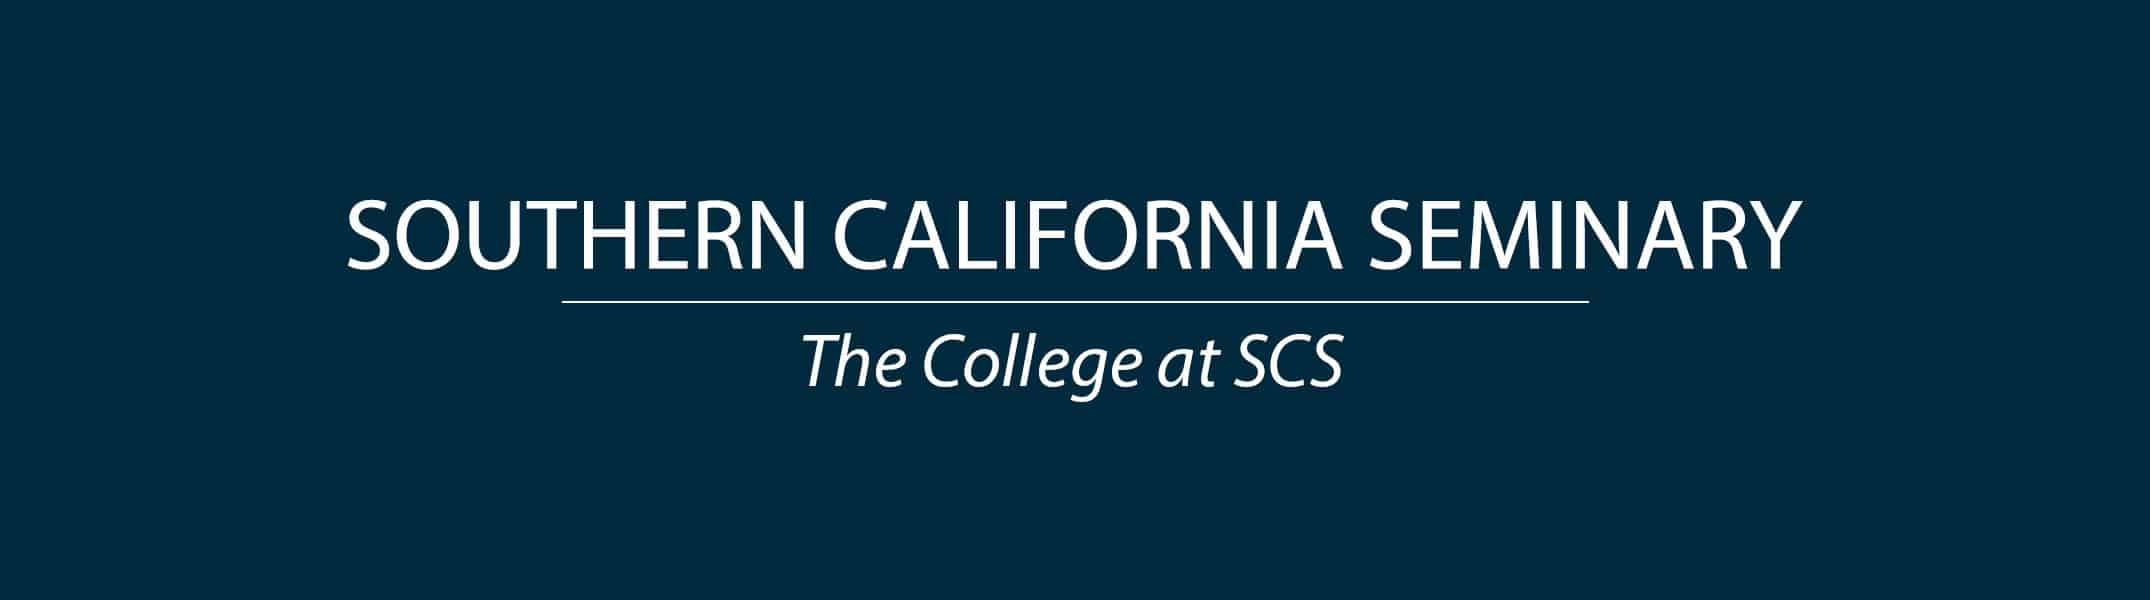 Military Friendly College at SCS